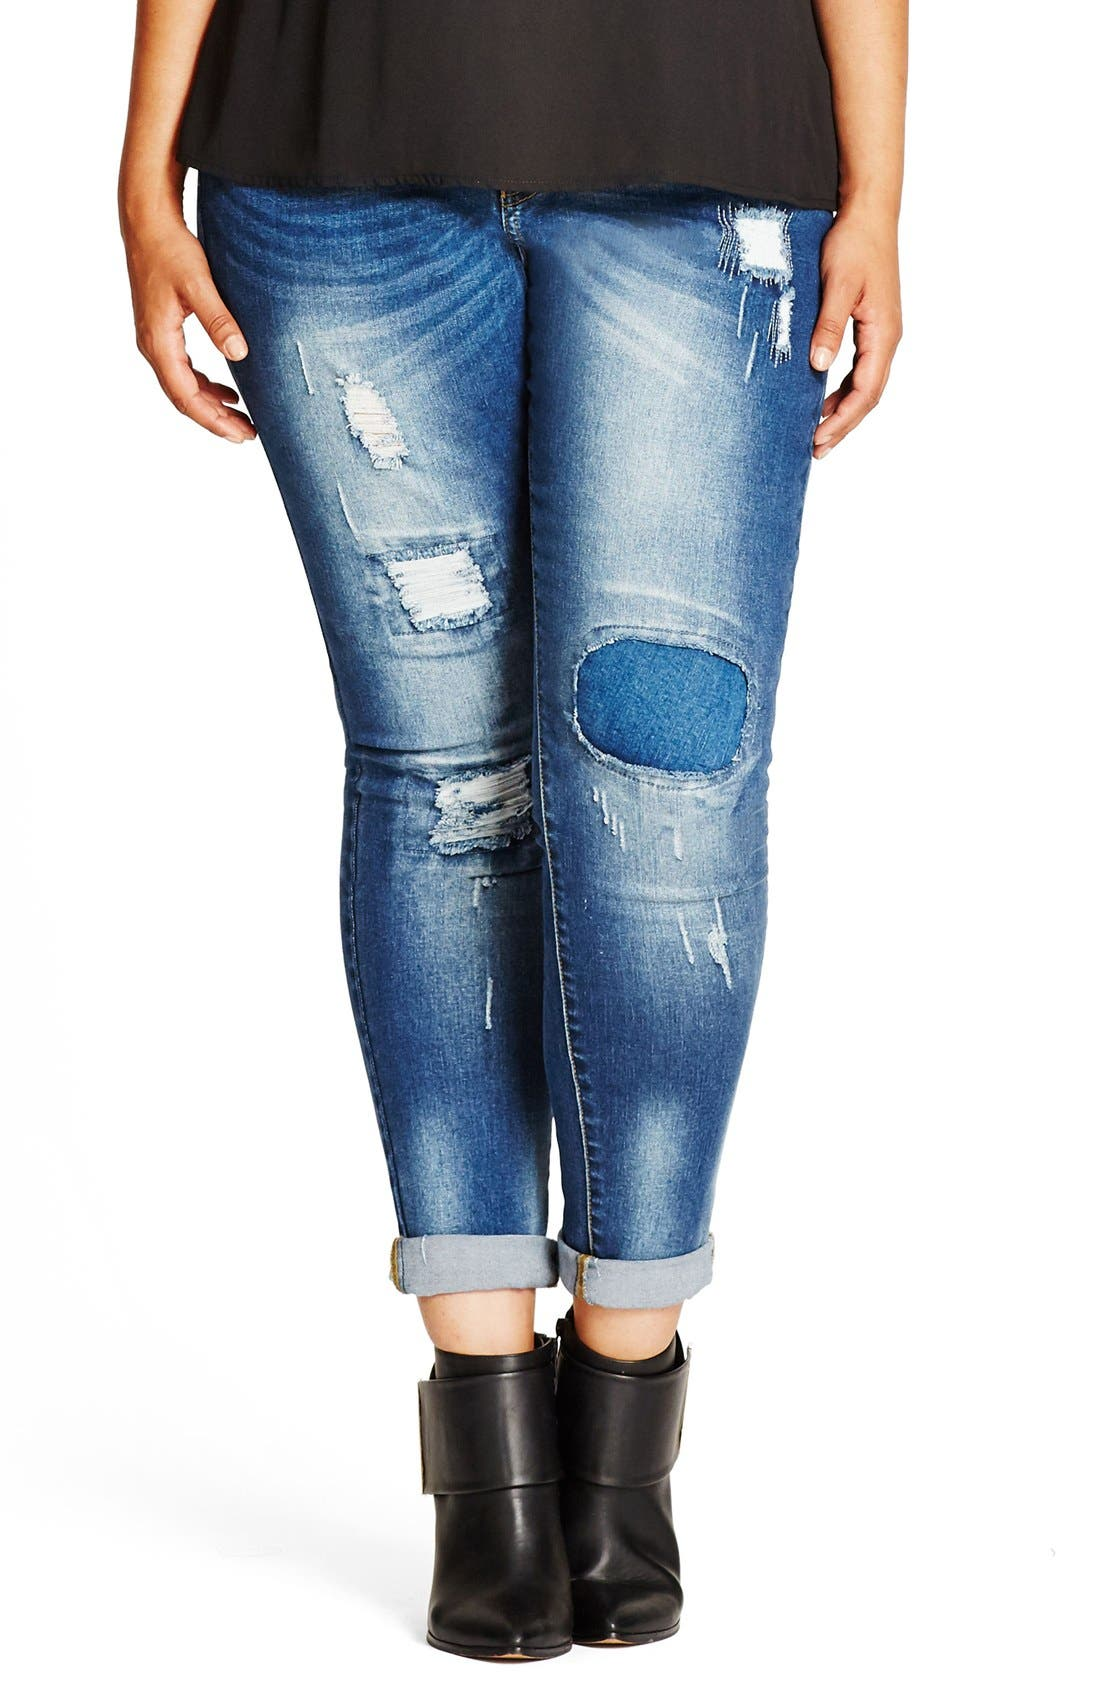 Alternate Image 3  - City Chic Patched Up Distressed Skinny Jeans (Plus Size)